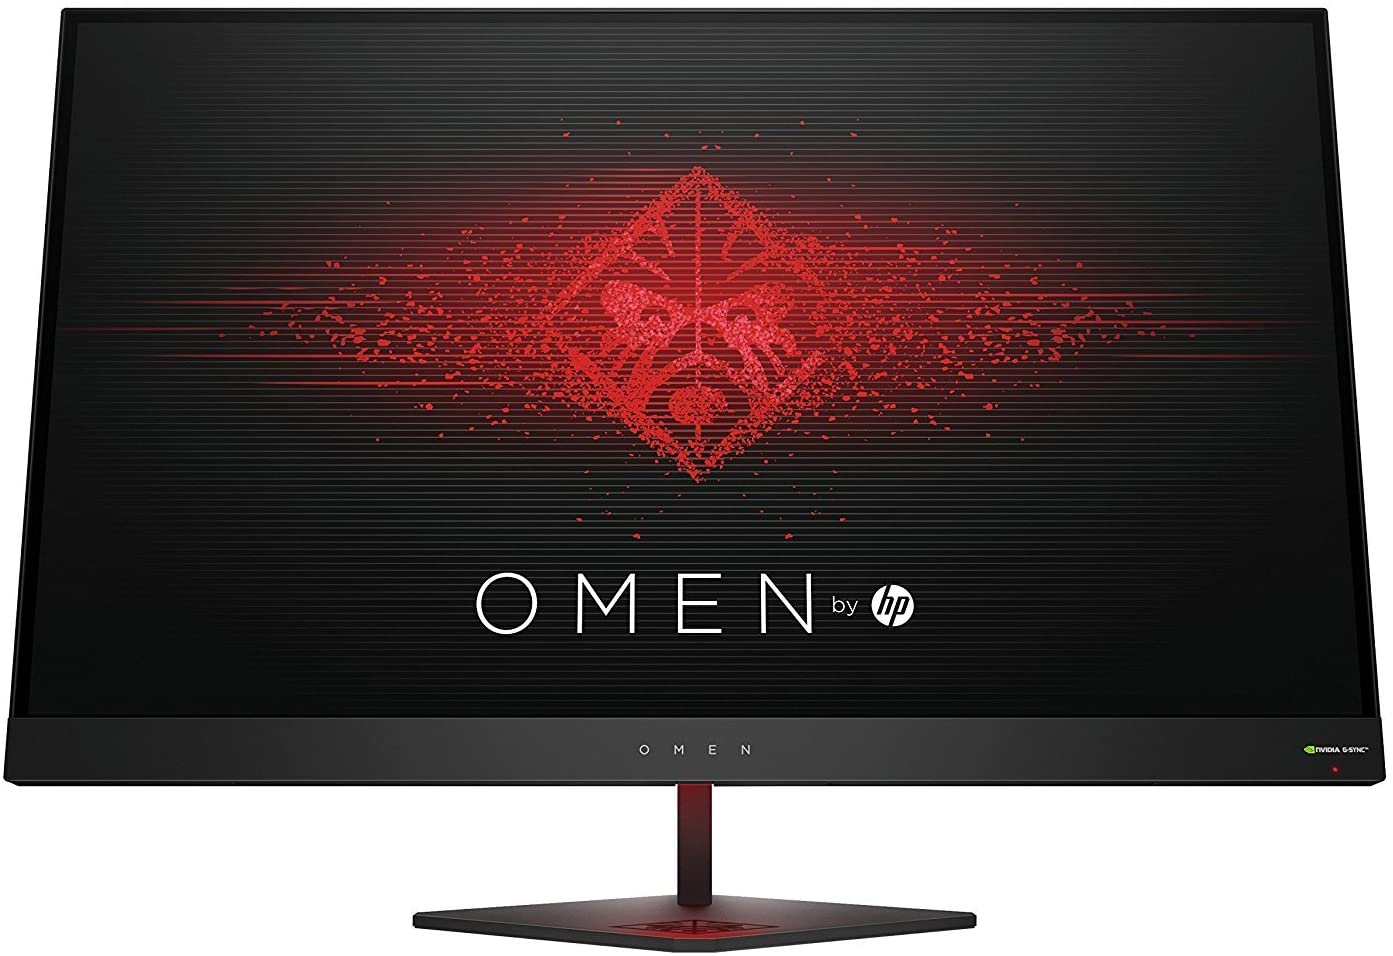 The HP Omen 27 Renewed Model is now sold for $350